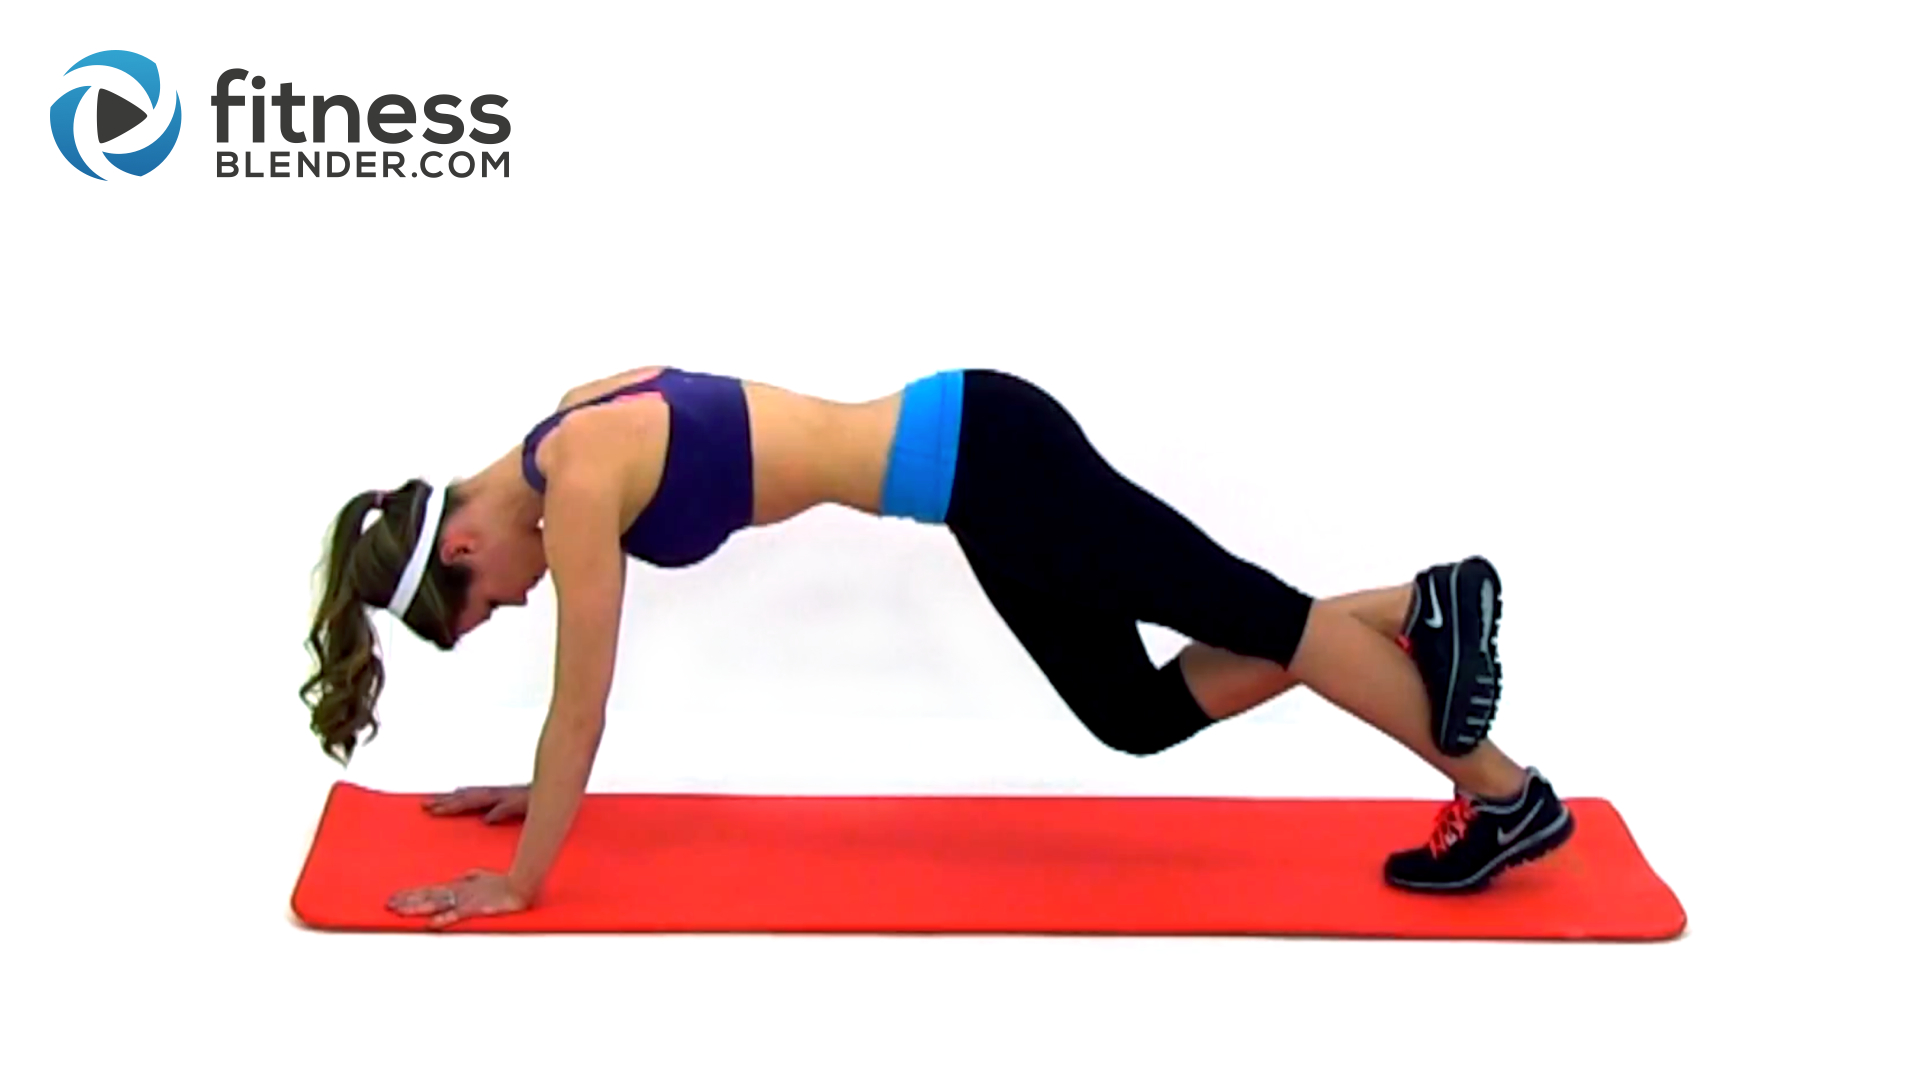 Light Toning And Stretching Routine For Flexibility